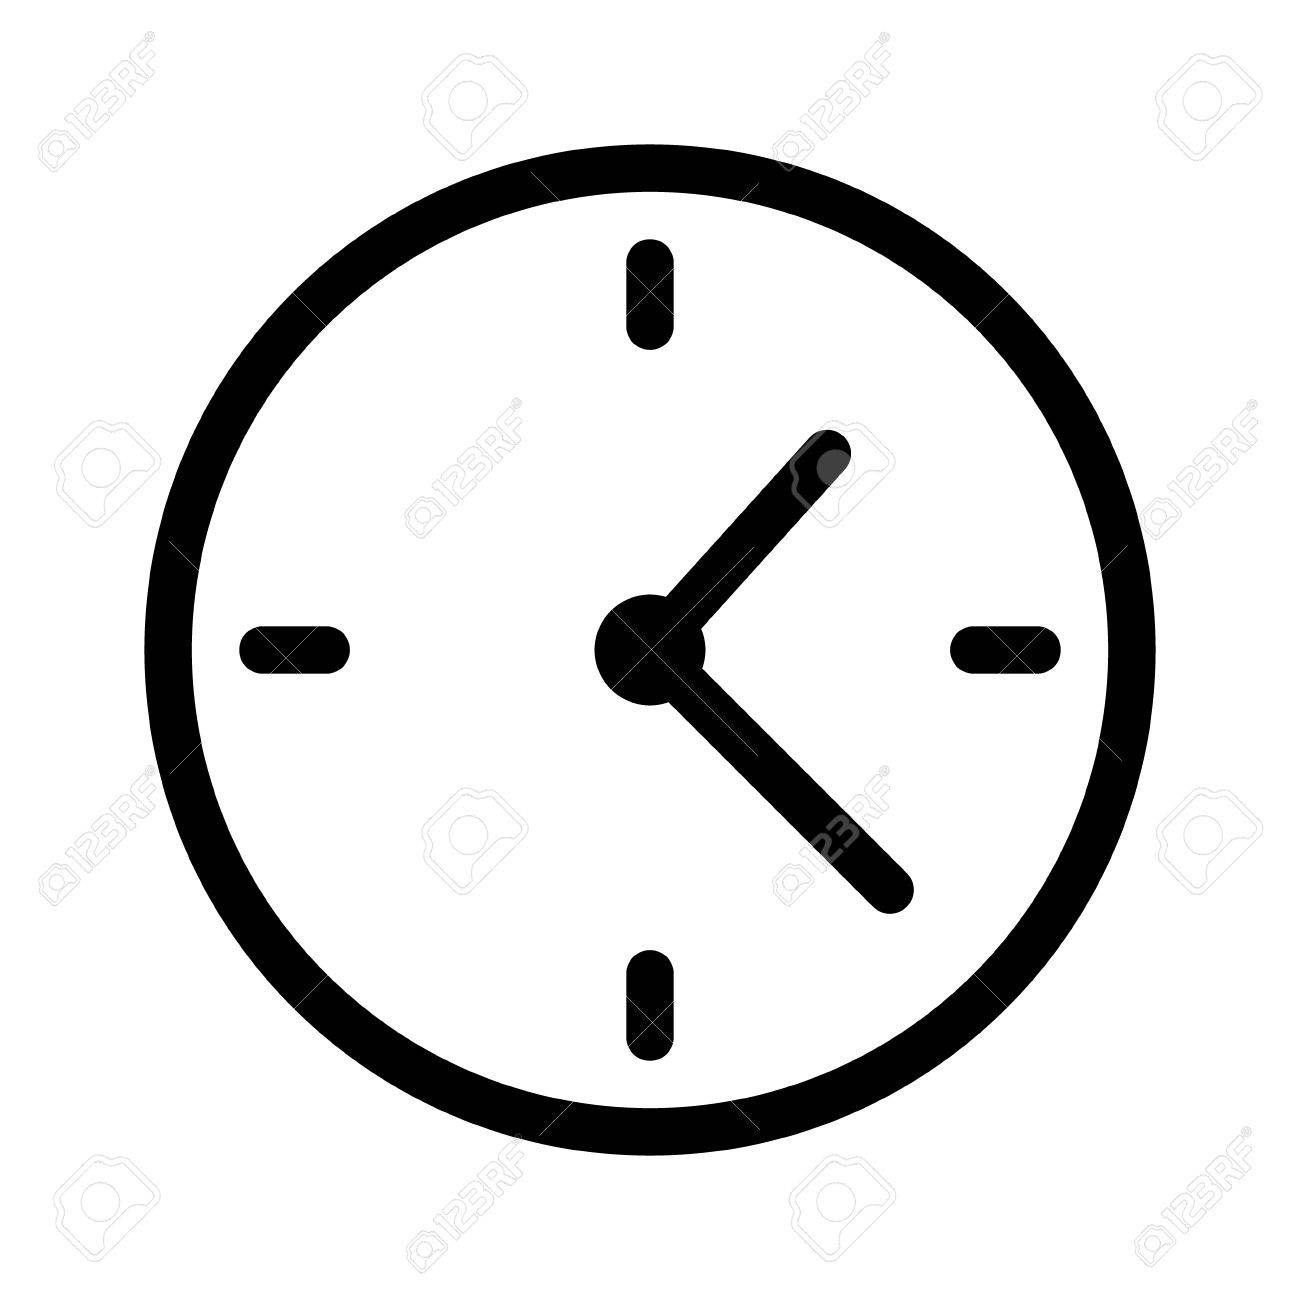 Simple Clock Face Clockface Or Watch Face With Hands Line Art